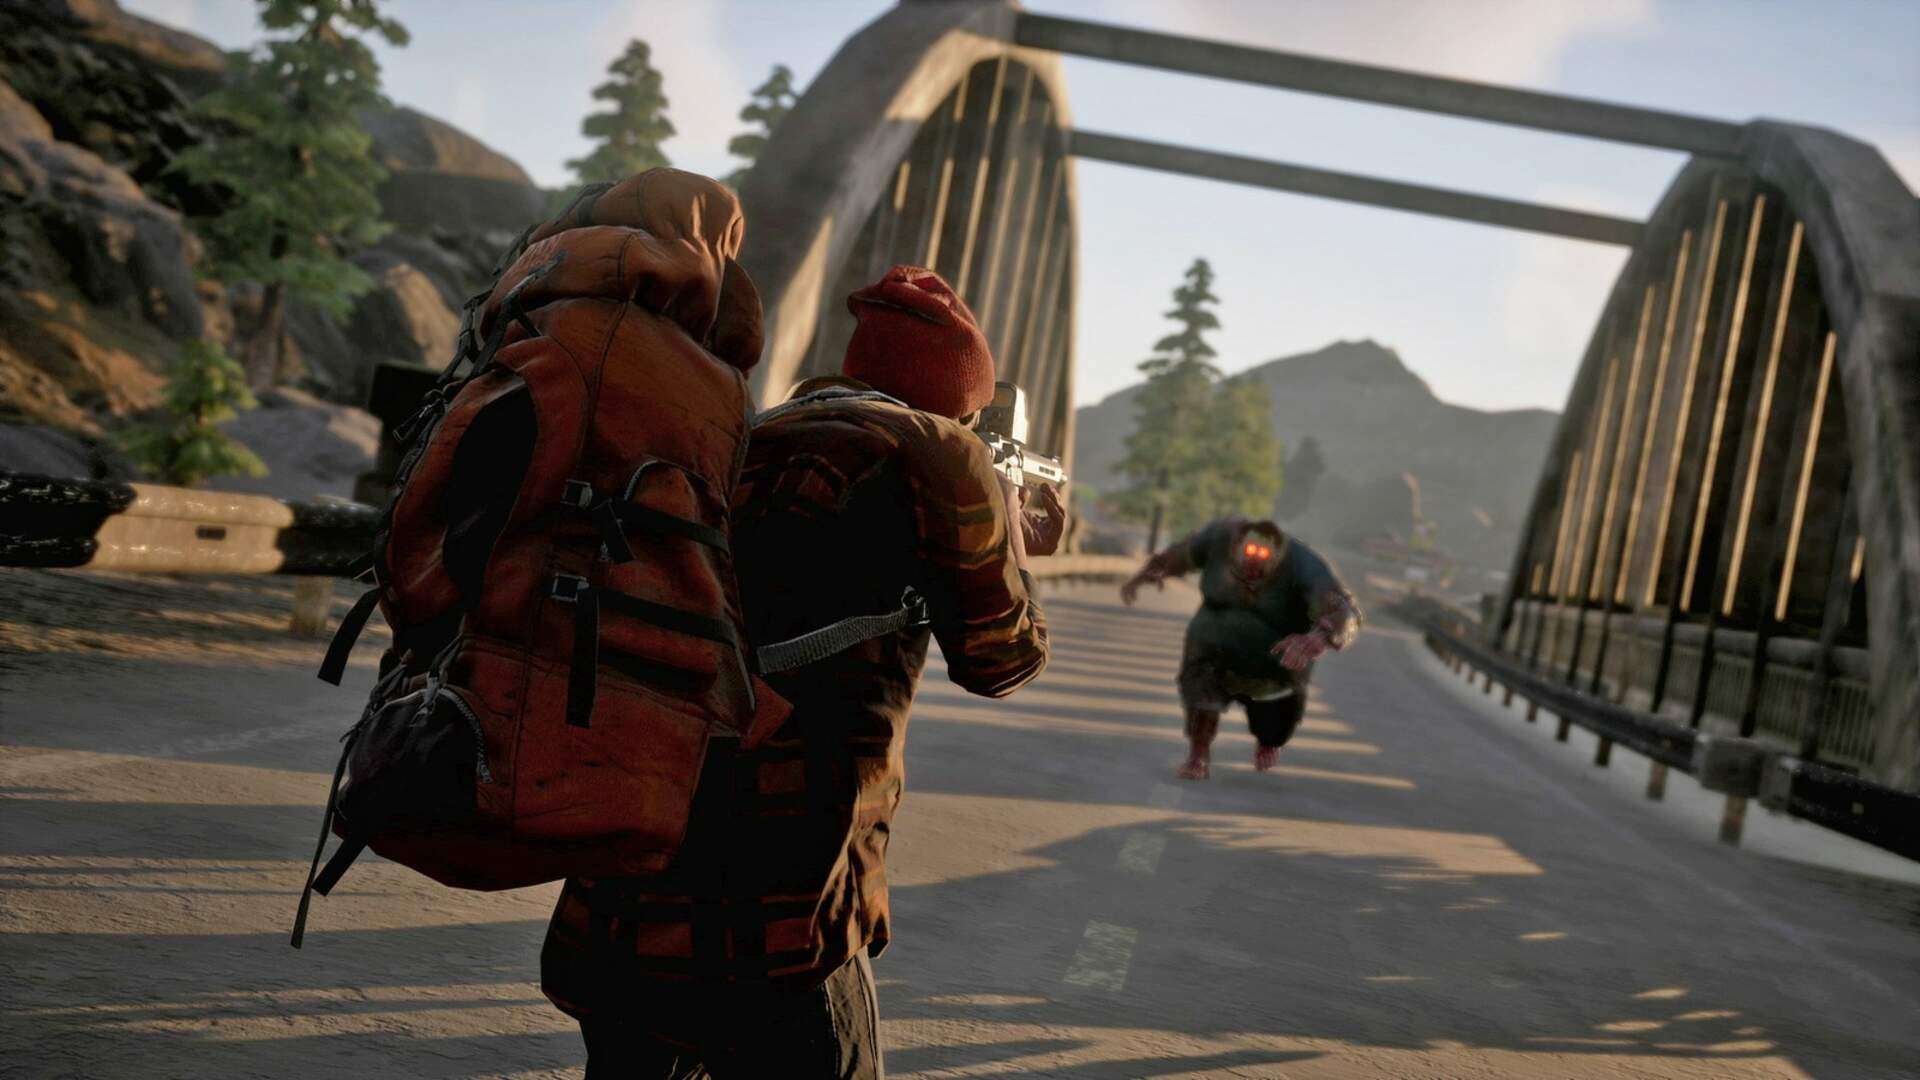 State of Decay 2 Players Killed Over 600 Million Zombies in the First Week